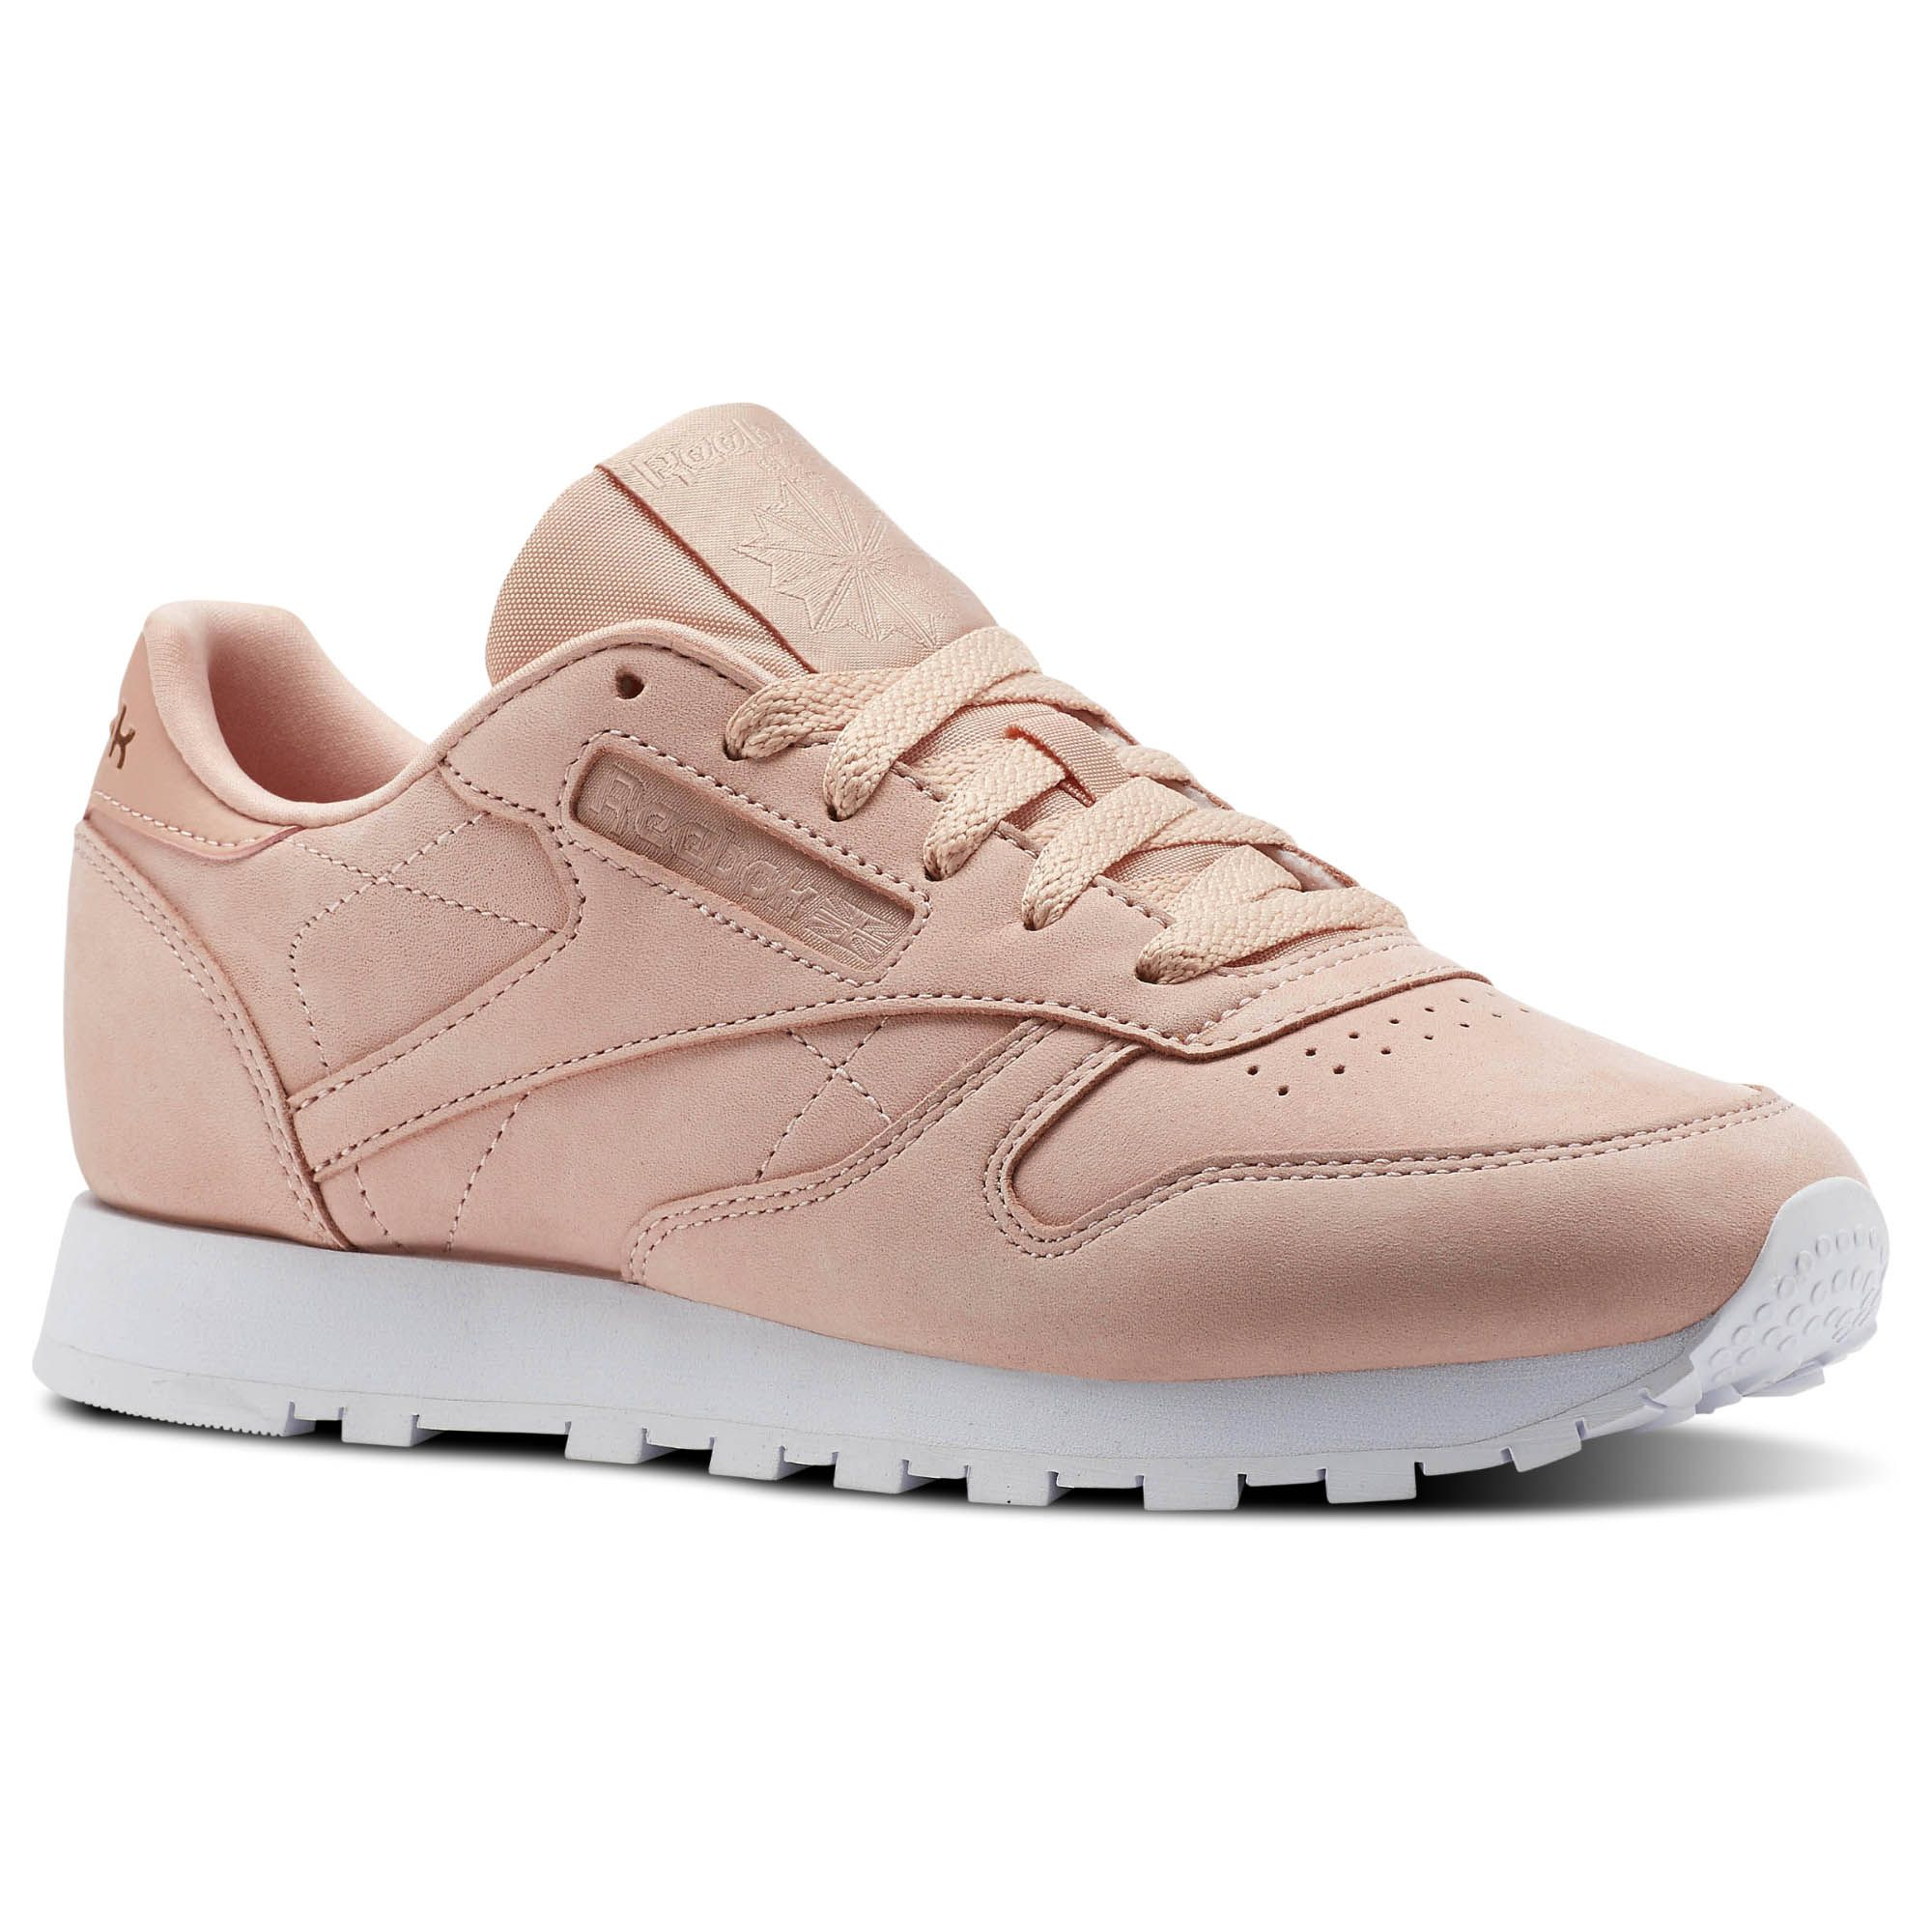 5e0de195360 Go au naturel. These neutral-tinted women s Classic Leather shoes blush  with on-